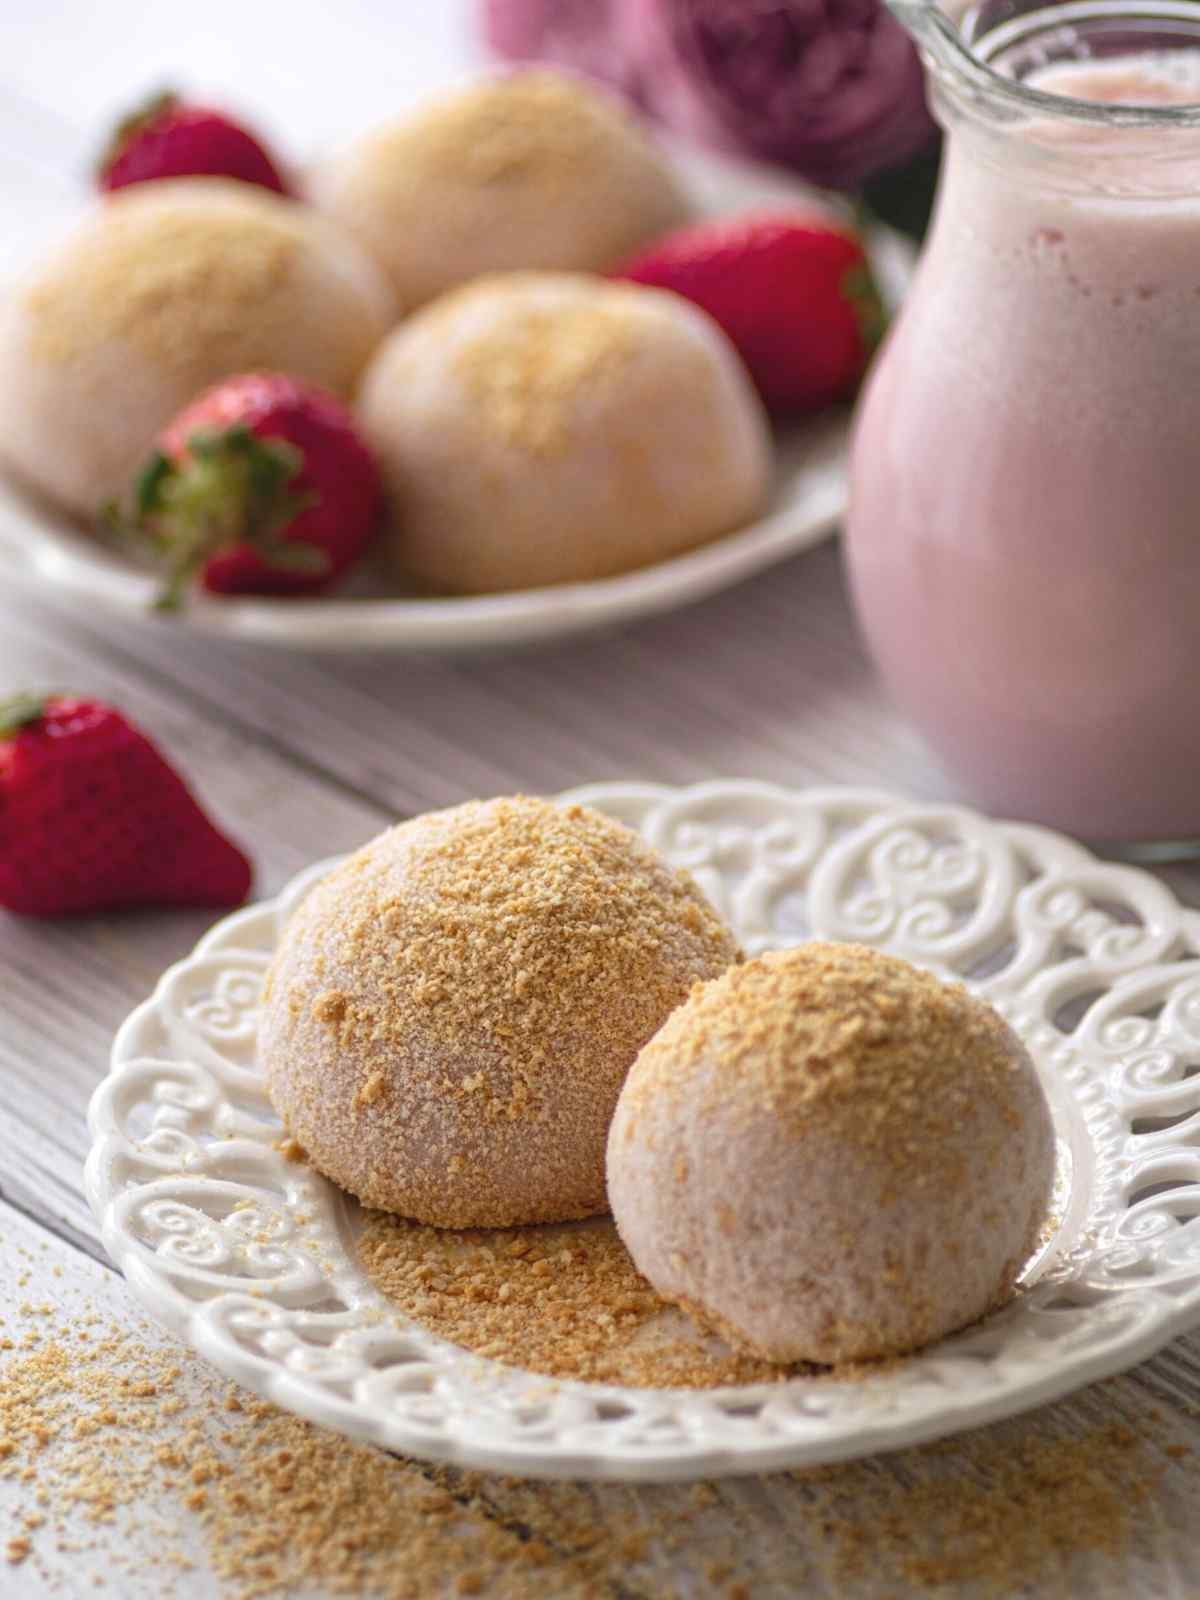 Two strawberry cheesecake mochi on a white plate with biscuit crumbs around